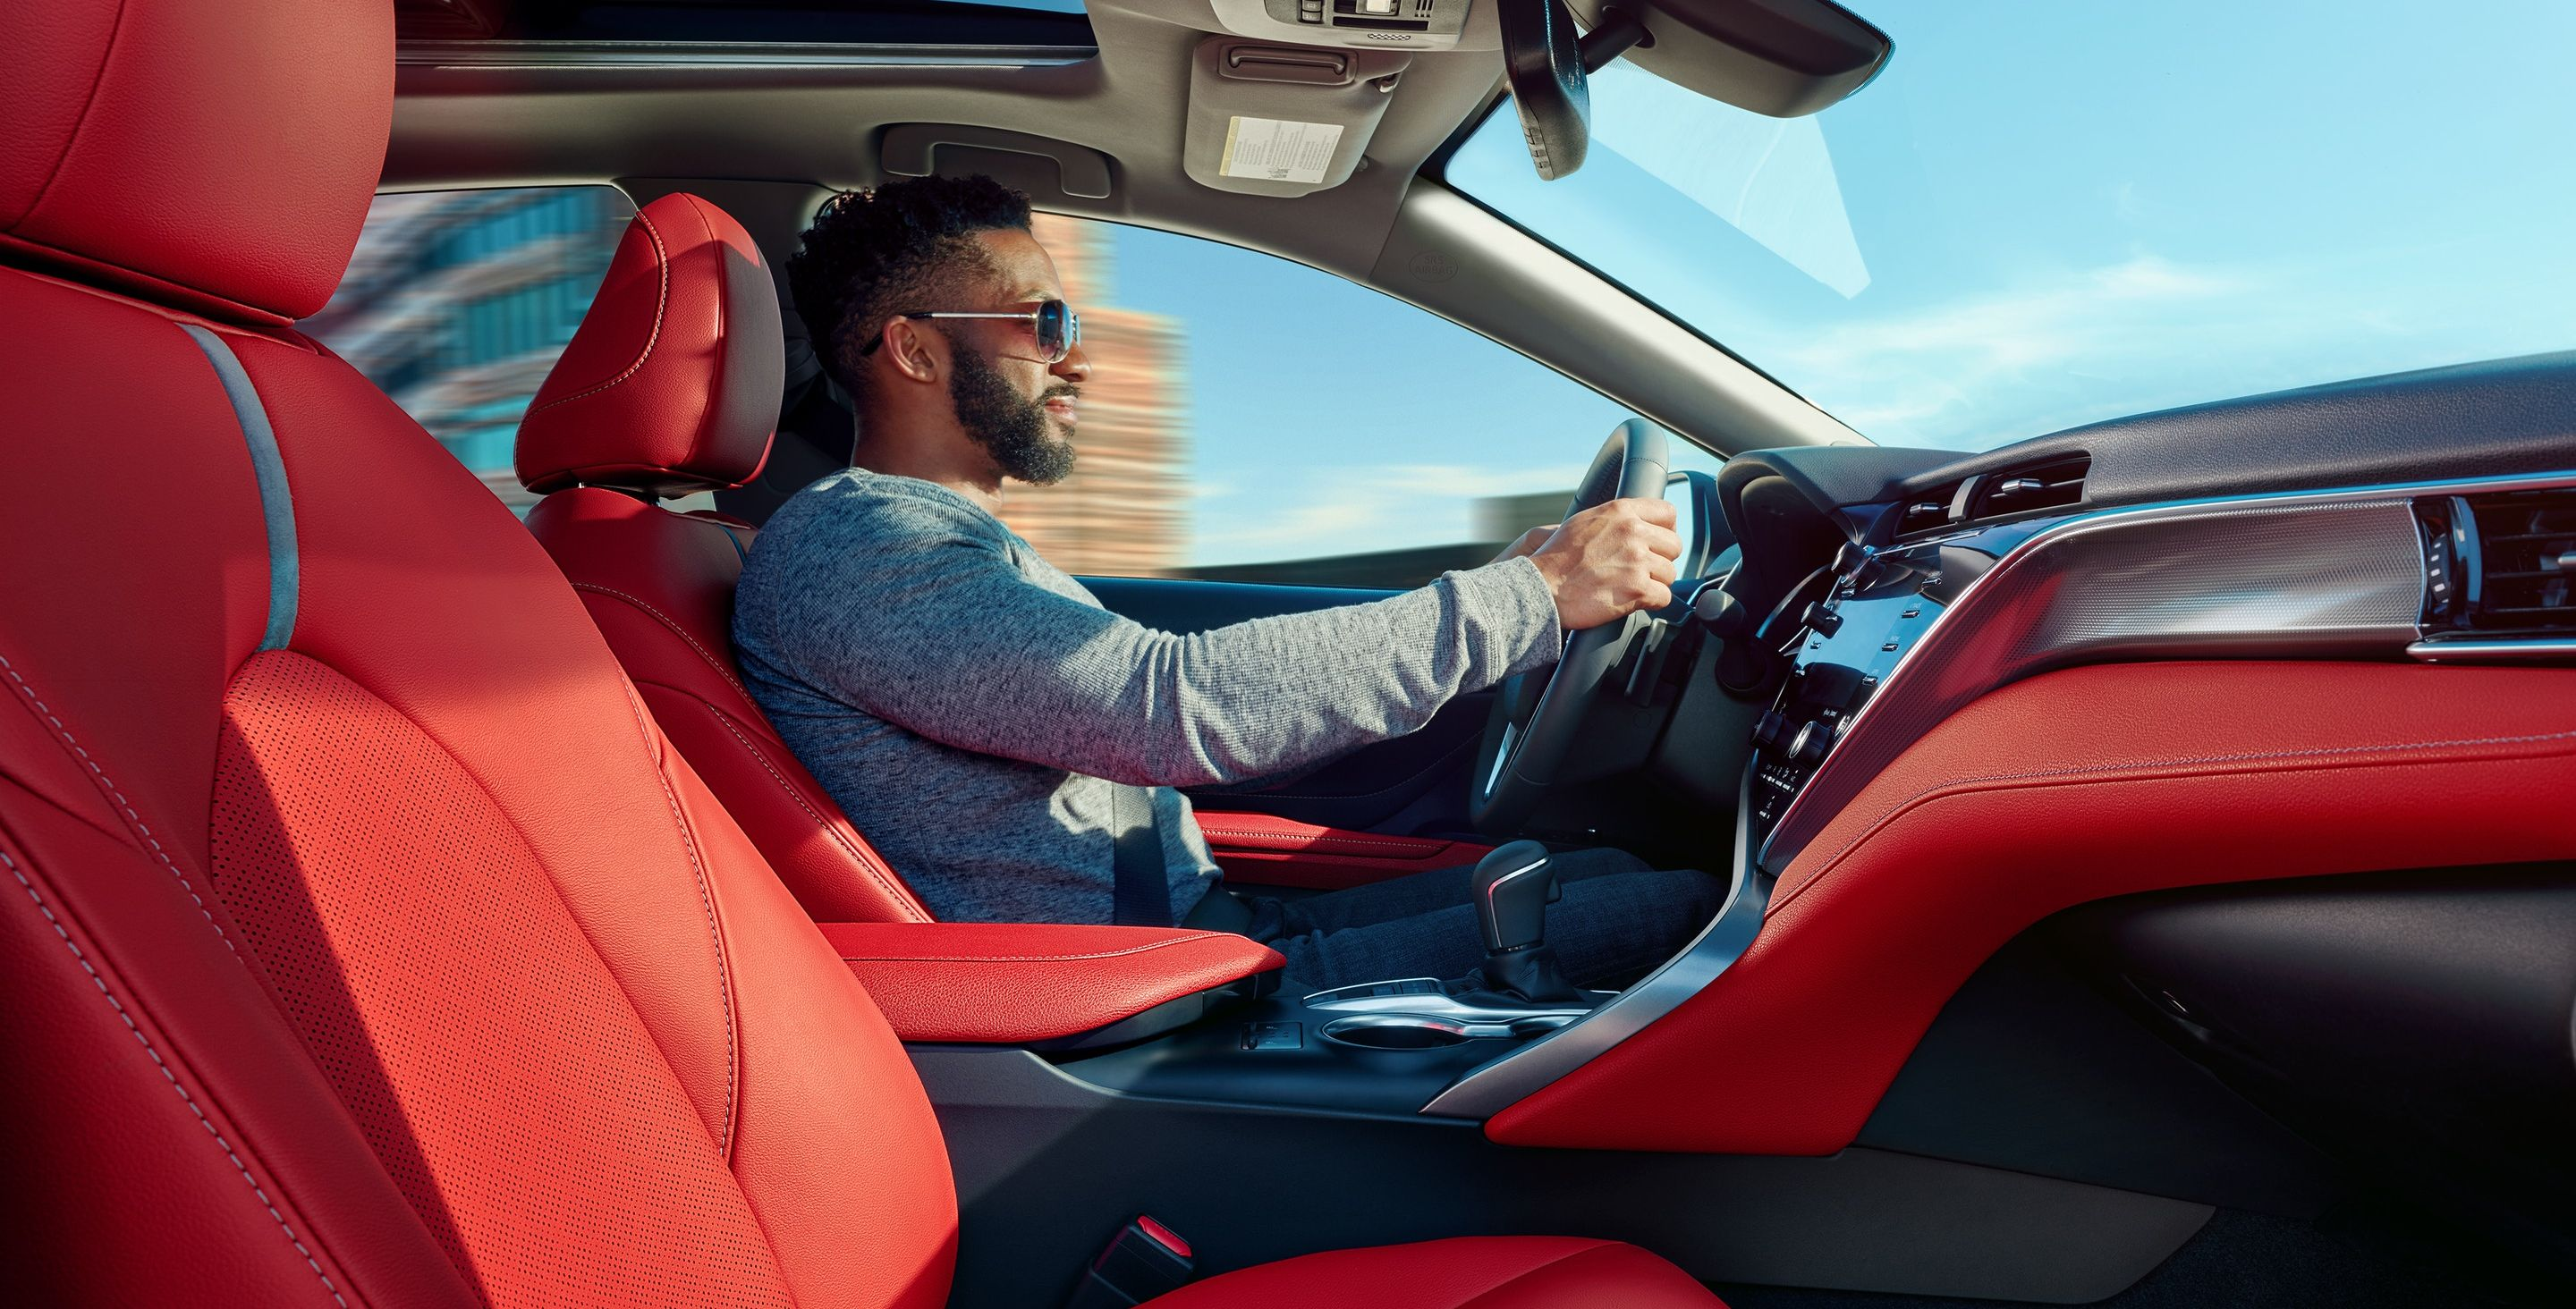 Stylish Interior of the 2019 Toyota Camry